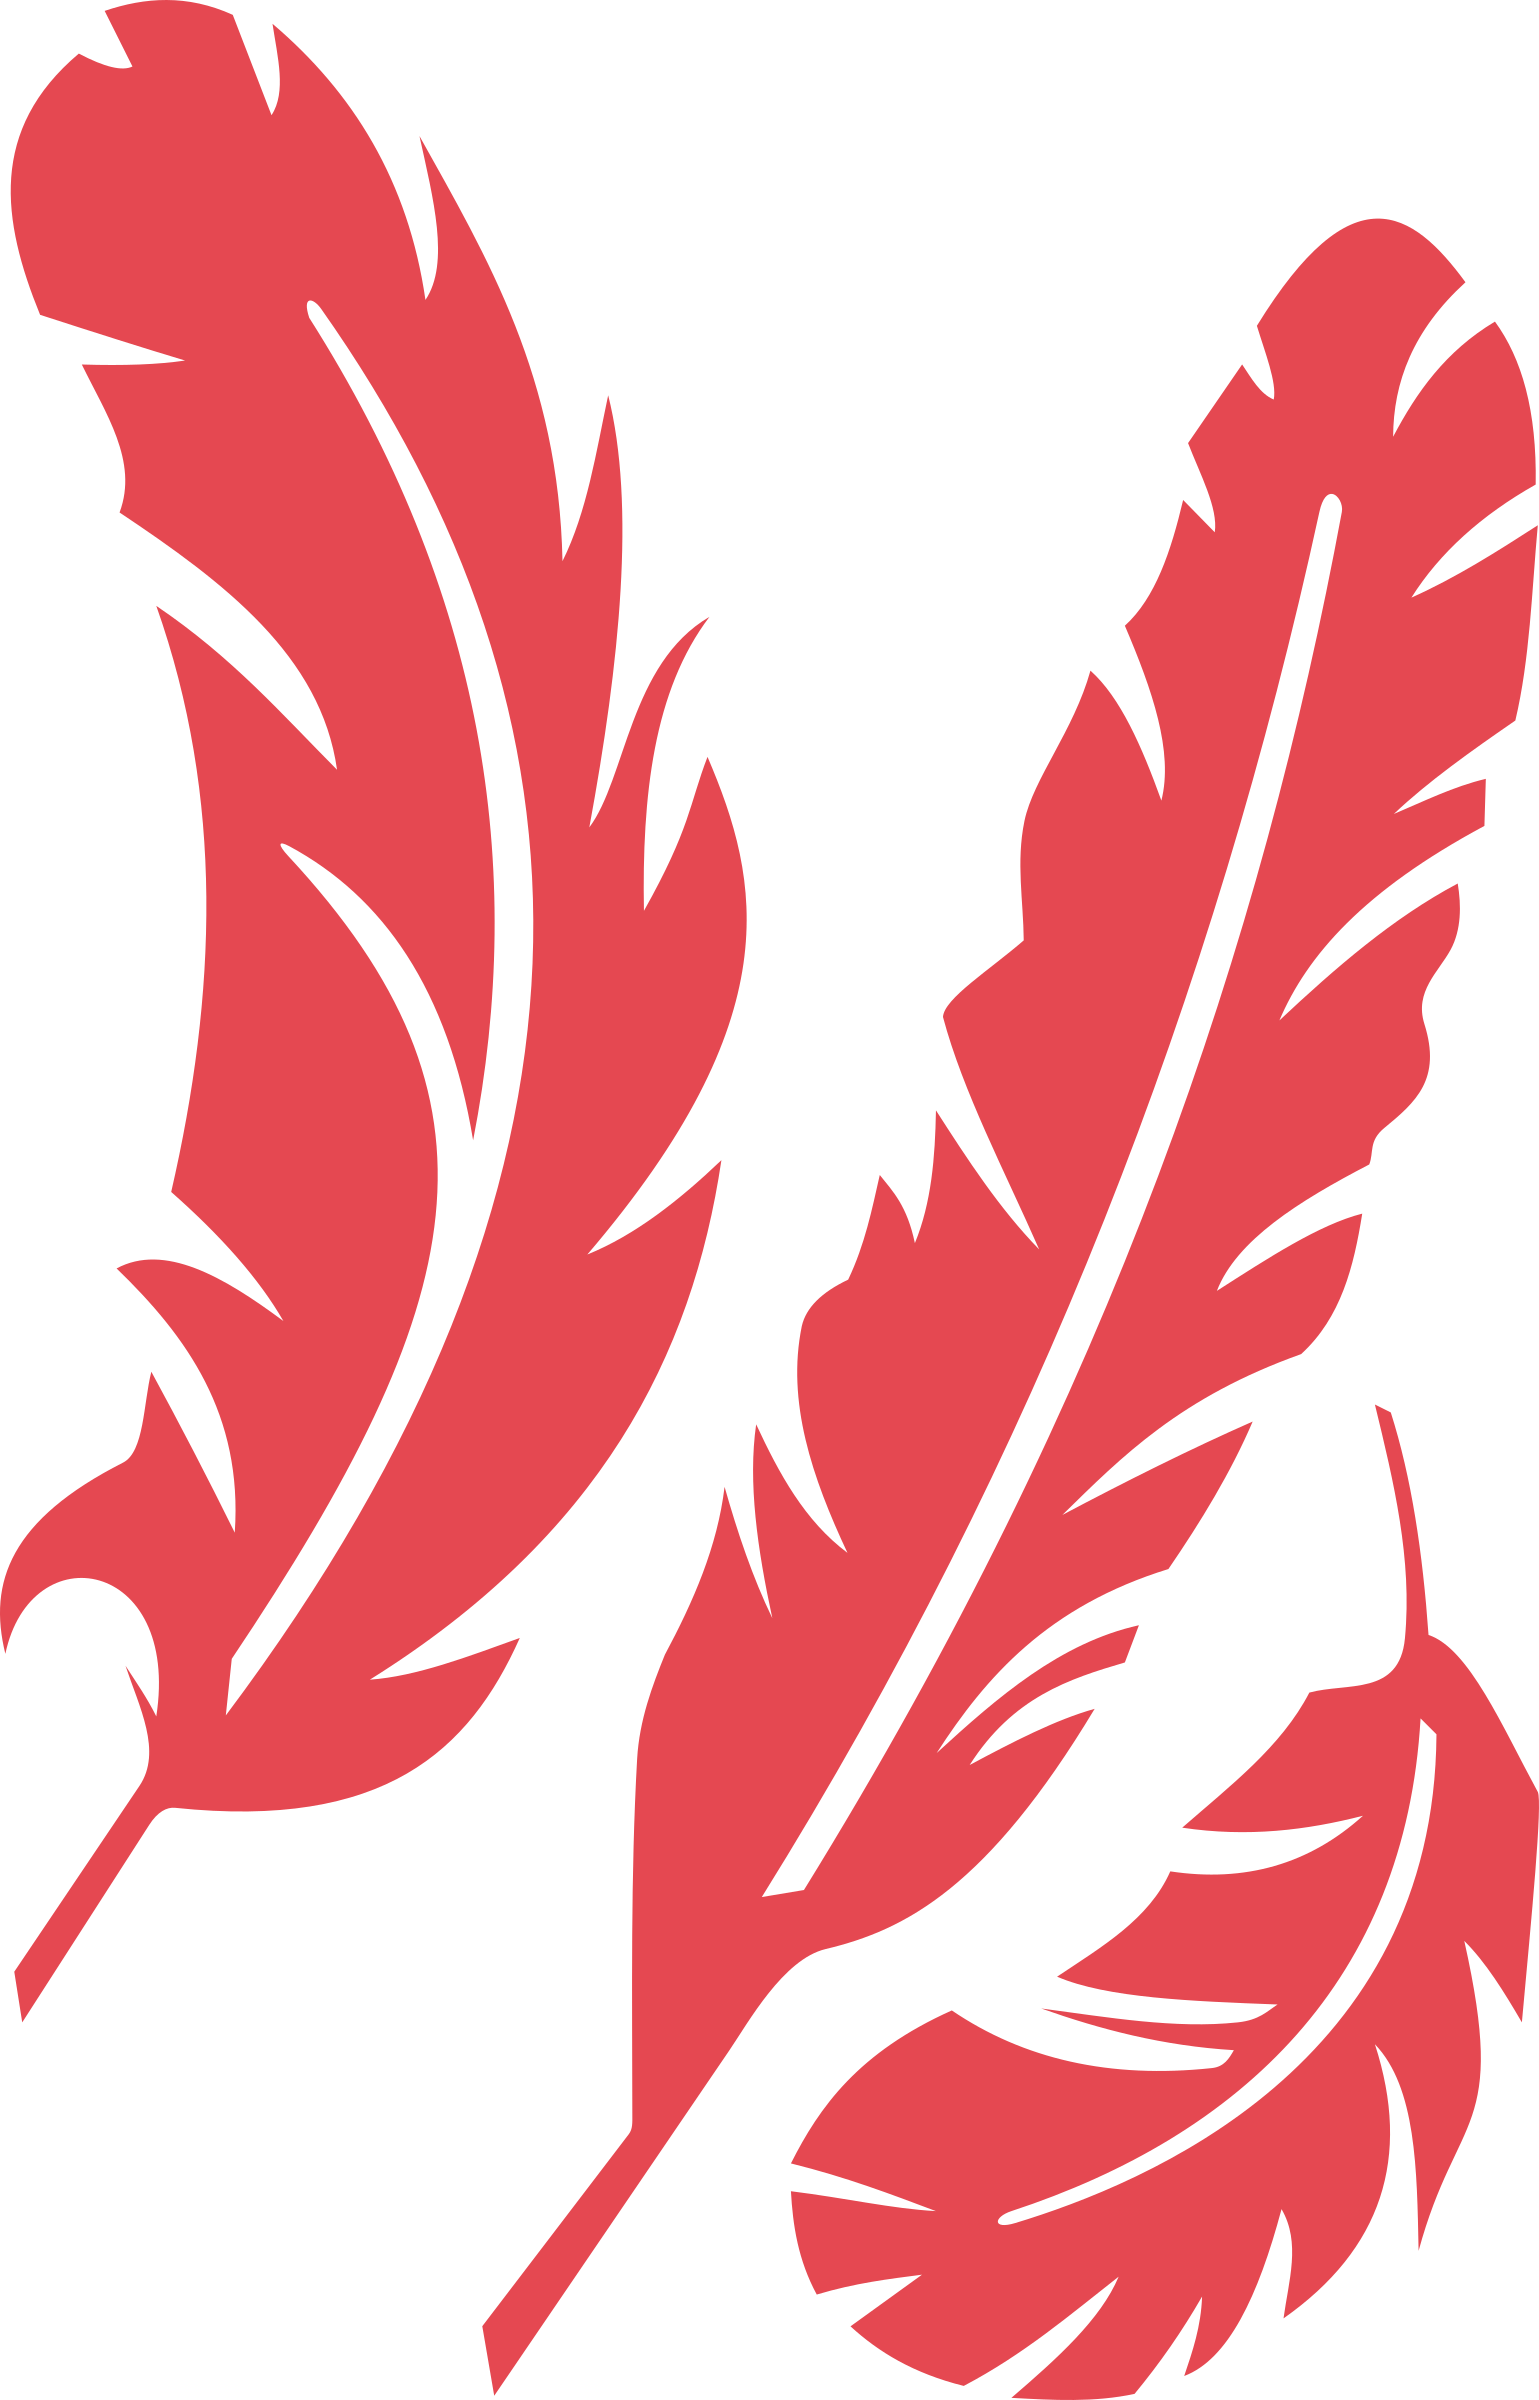 Red feather png. Clipart feathers big image